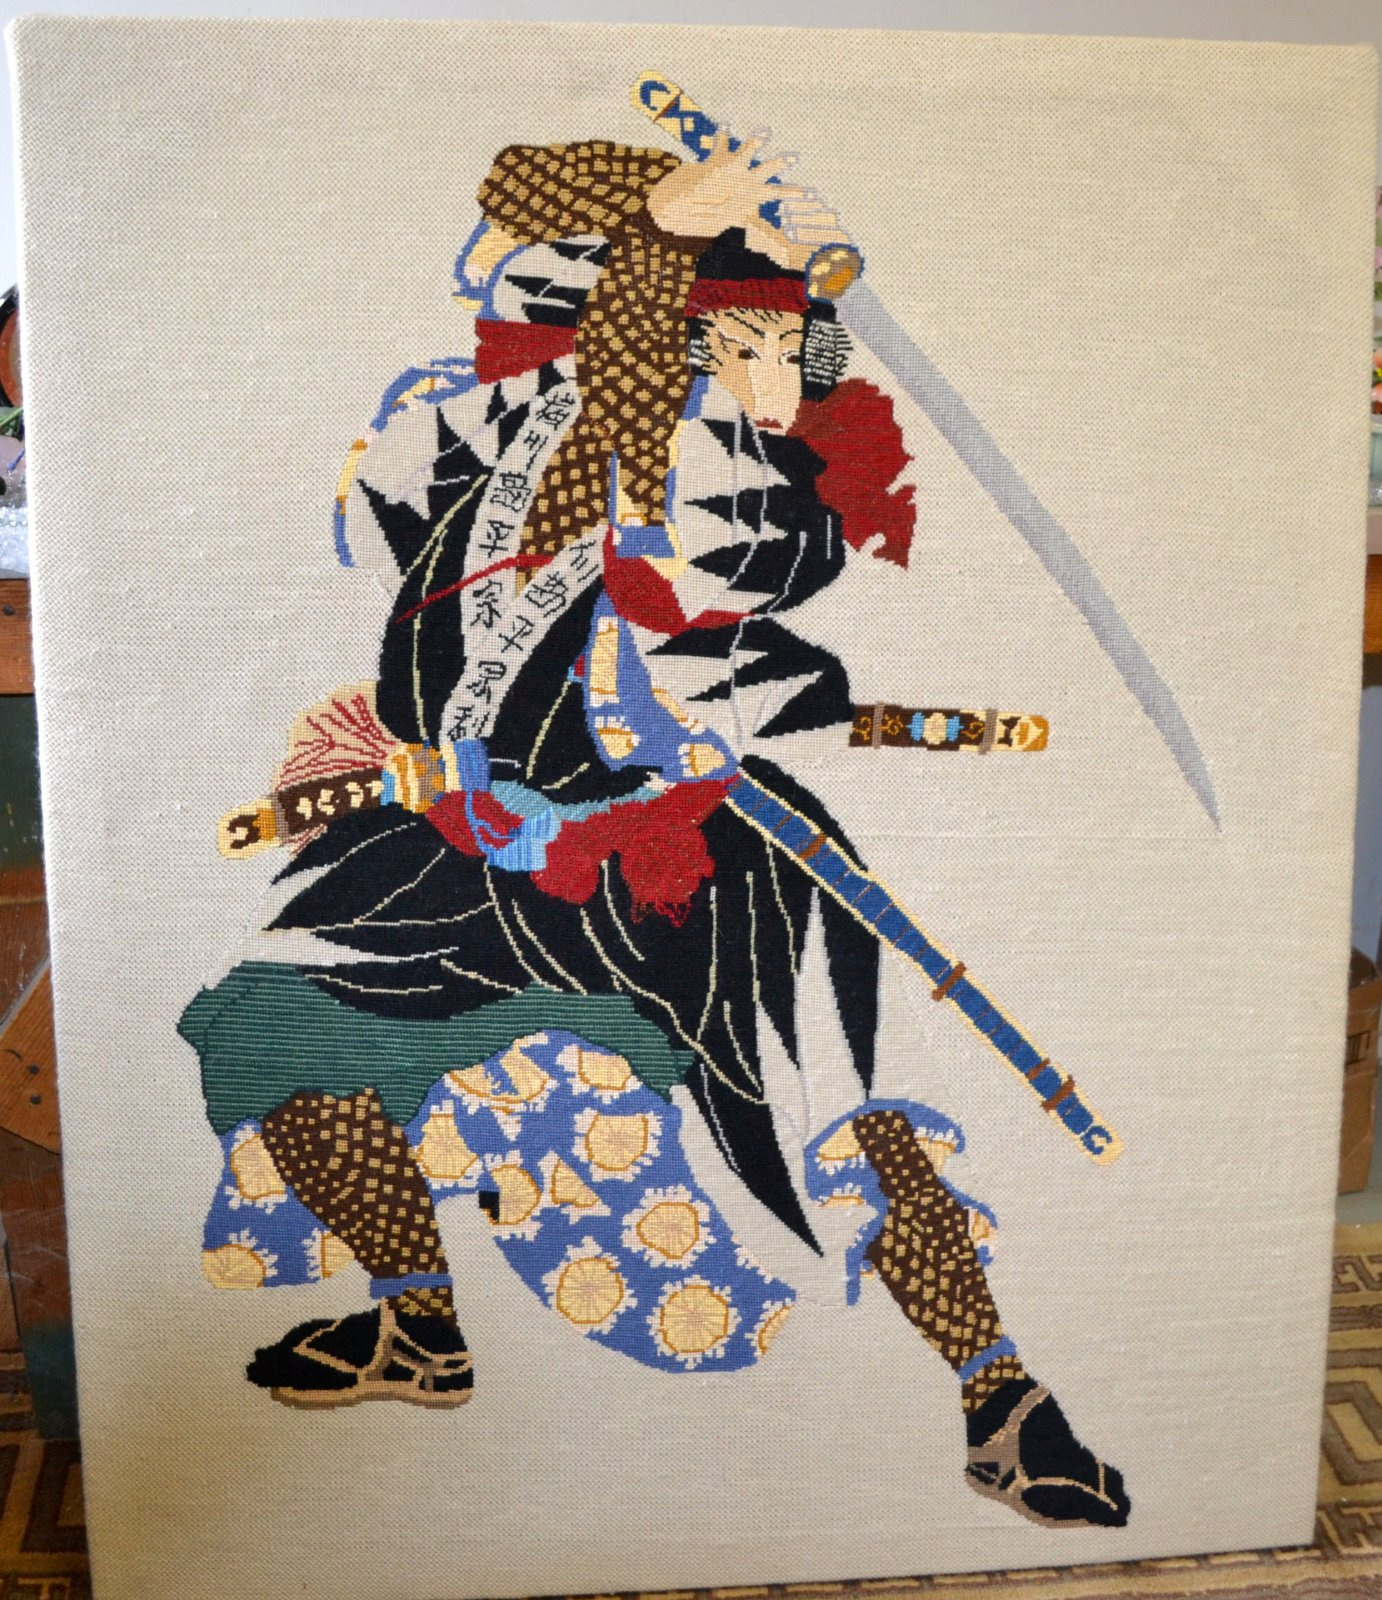 Japanese needle point of a Samurai with sword drawn